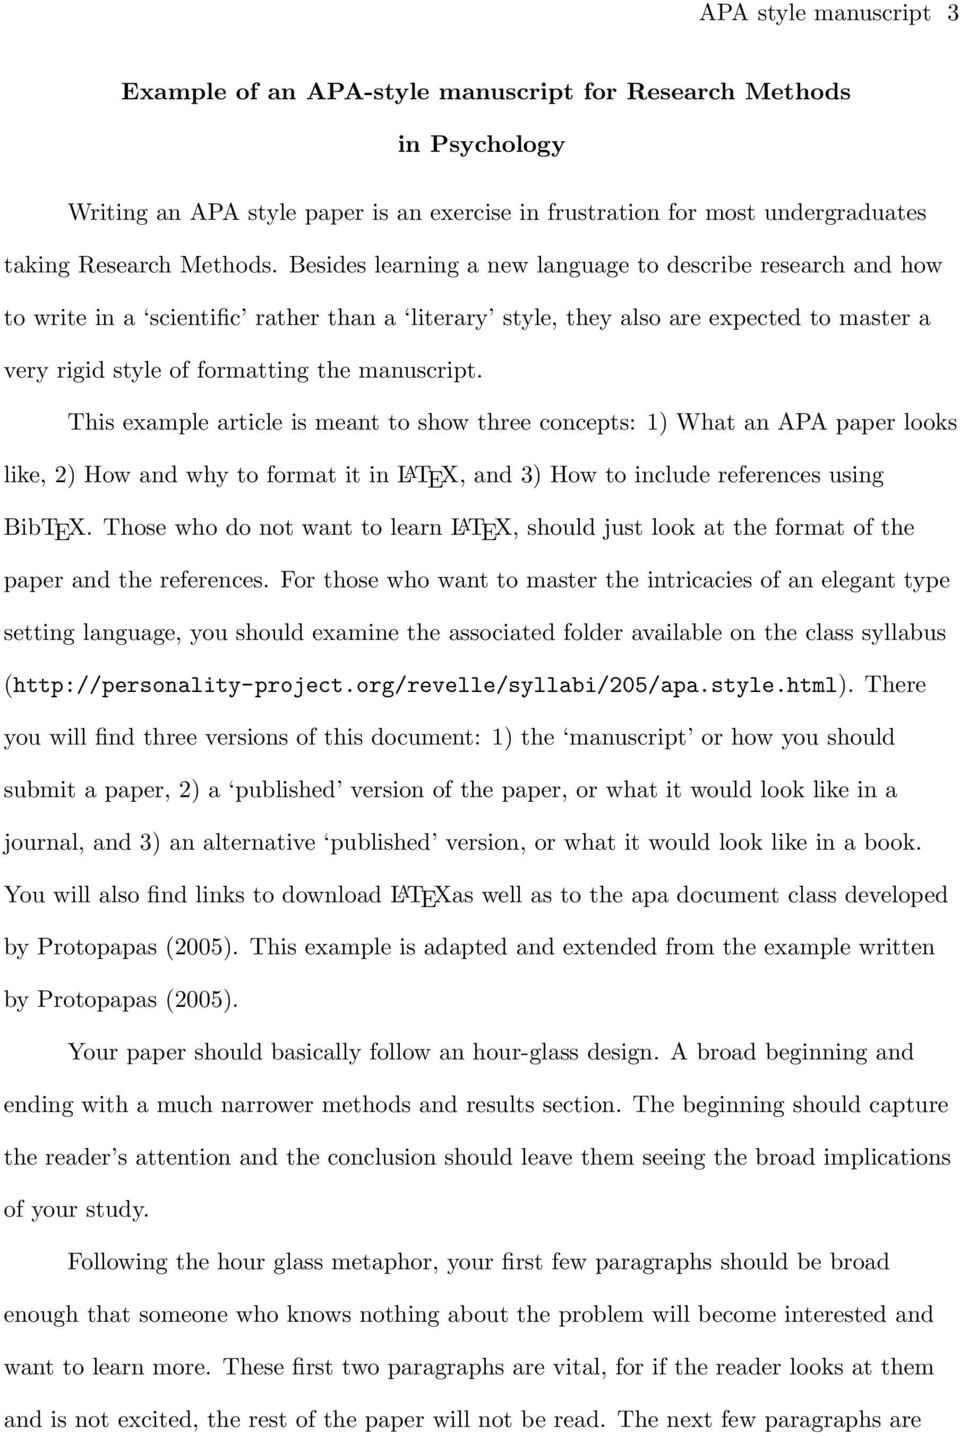 006 Apa Research Paper Results Section Sample Page 3 Stirring Full